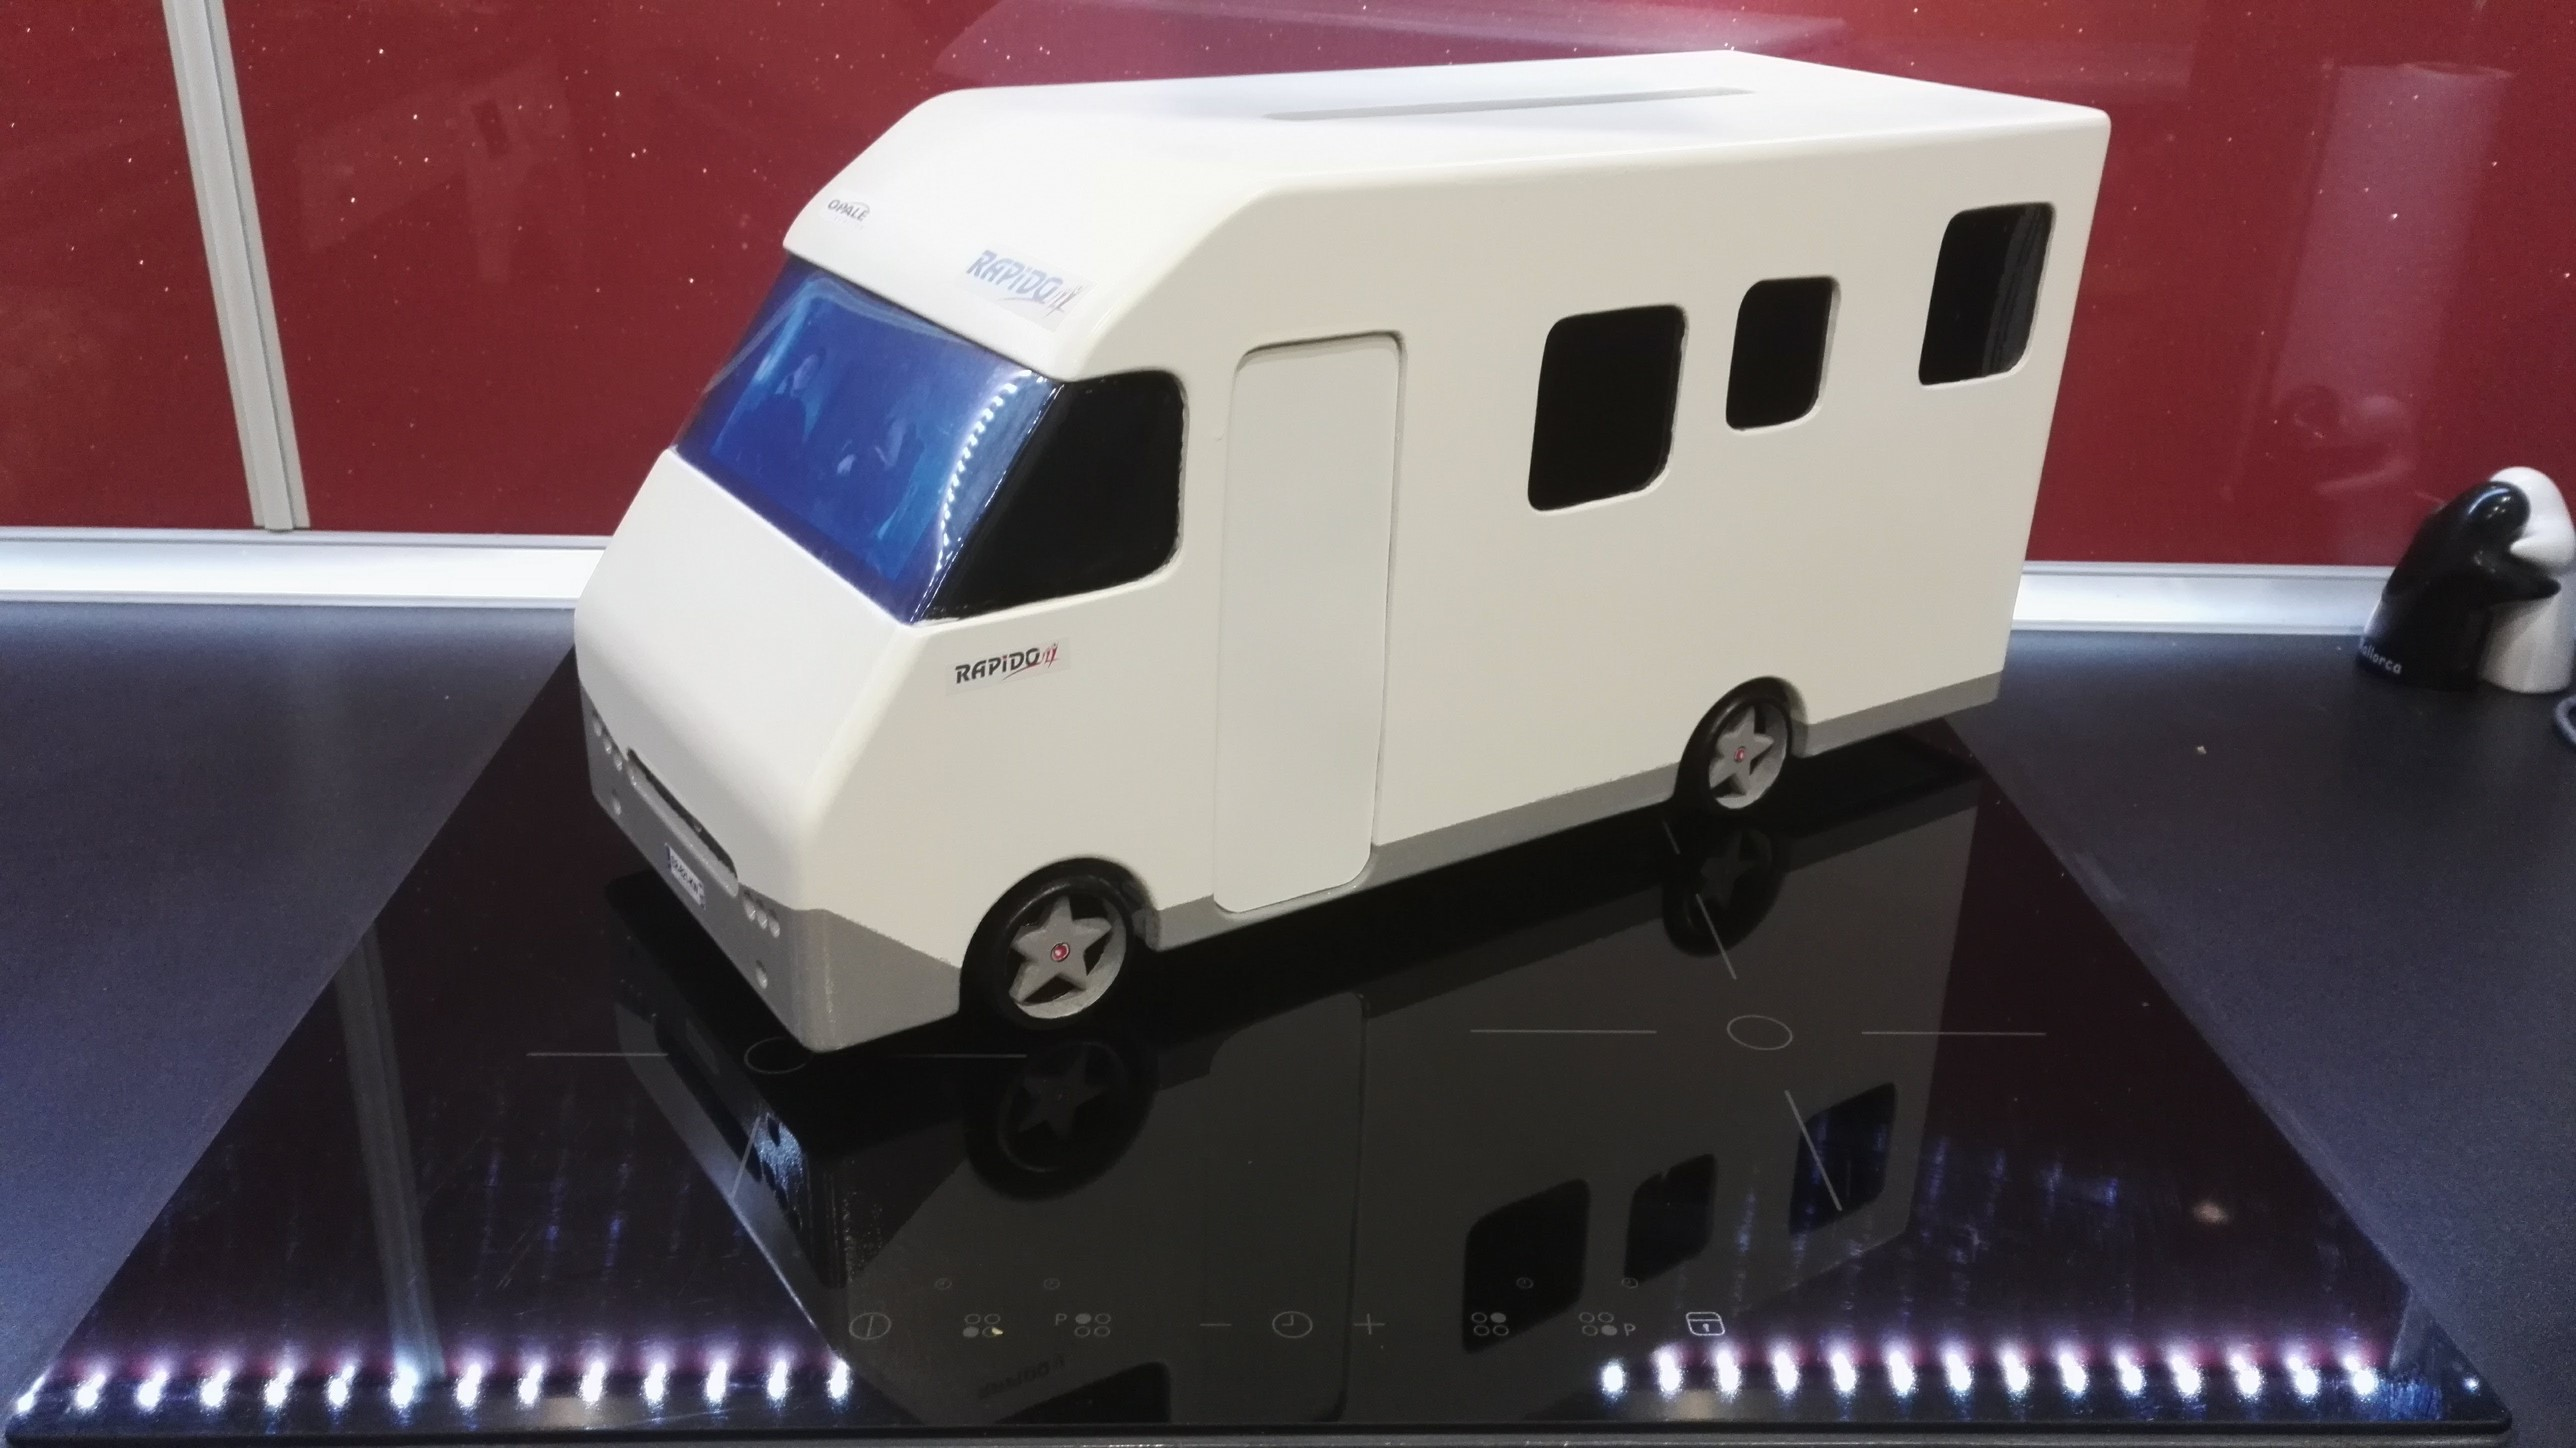 You are currently viewing Urne Camping-Car